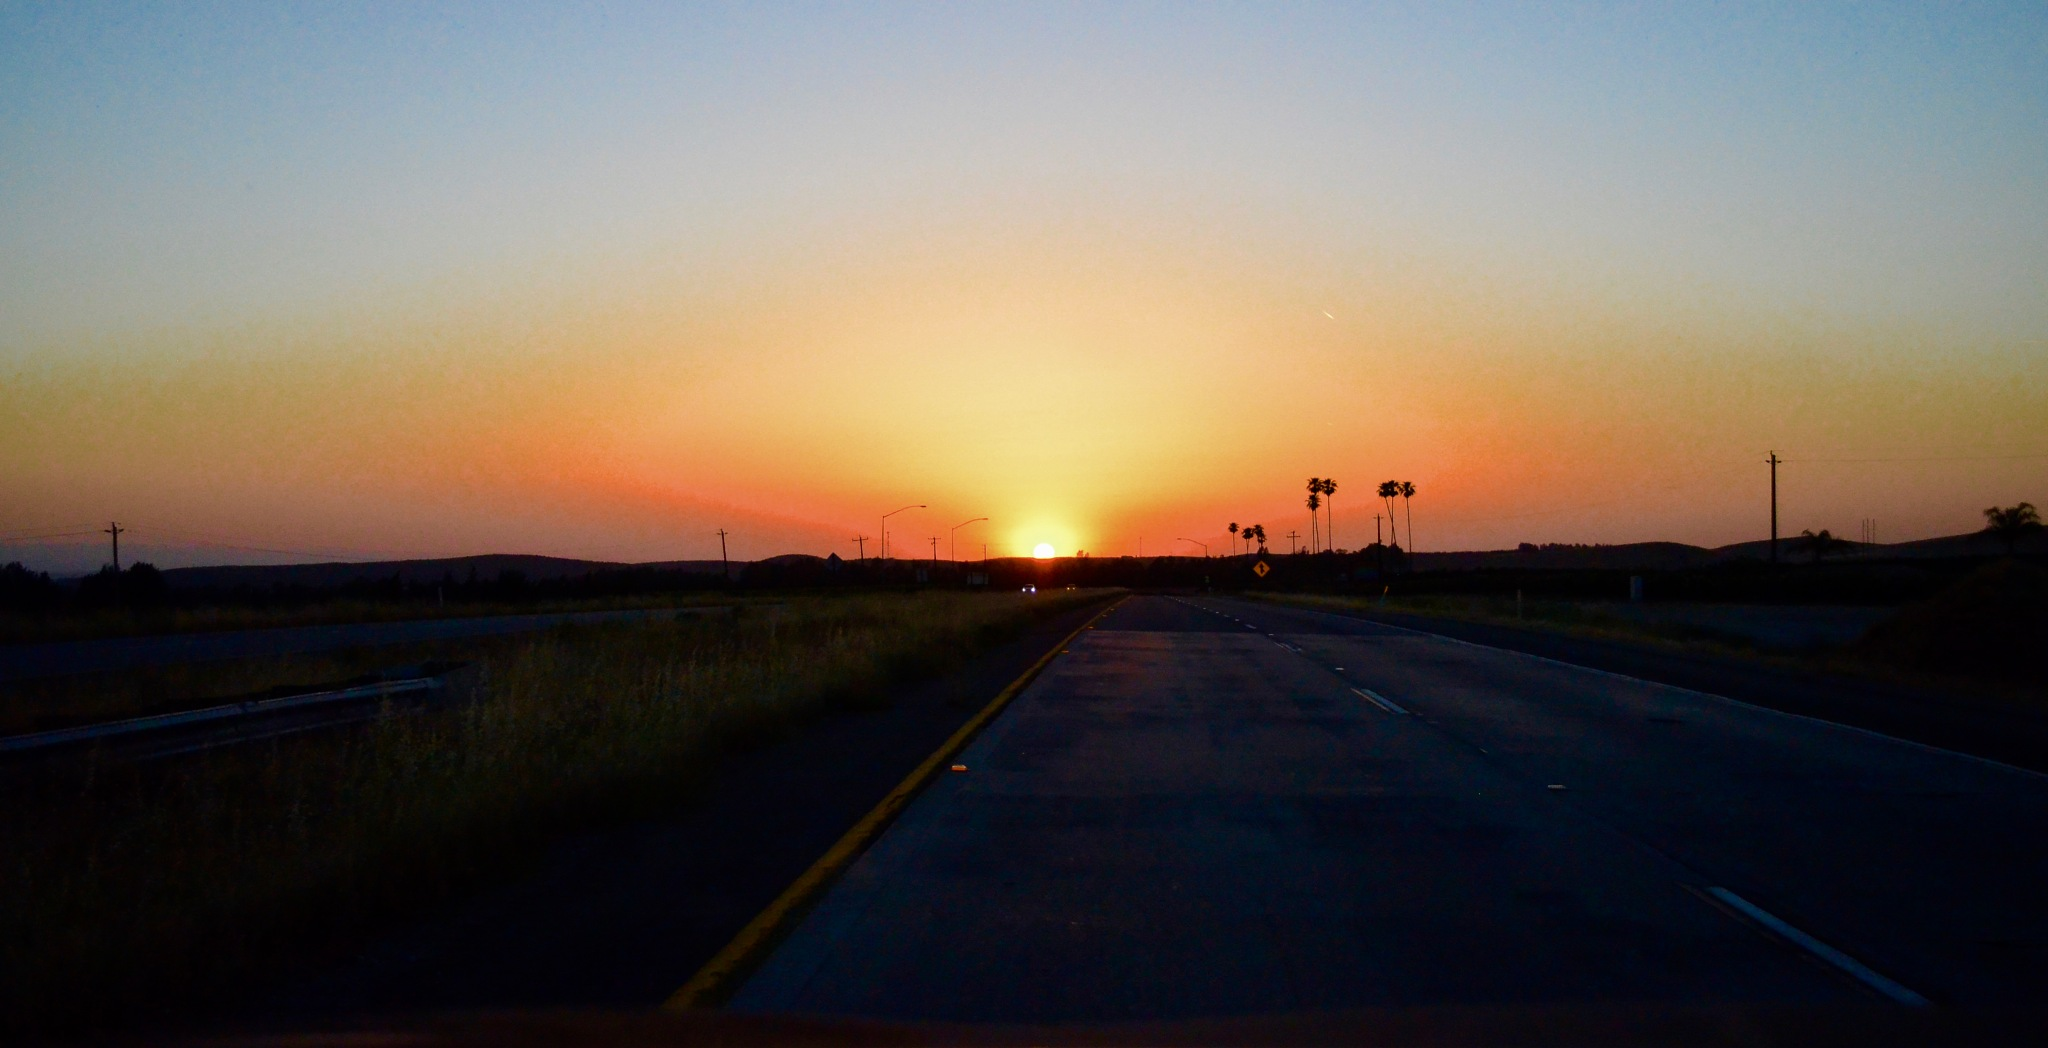 CA sunset - Bakersfield style -  by victor.vera.14